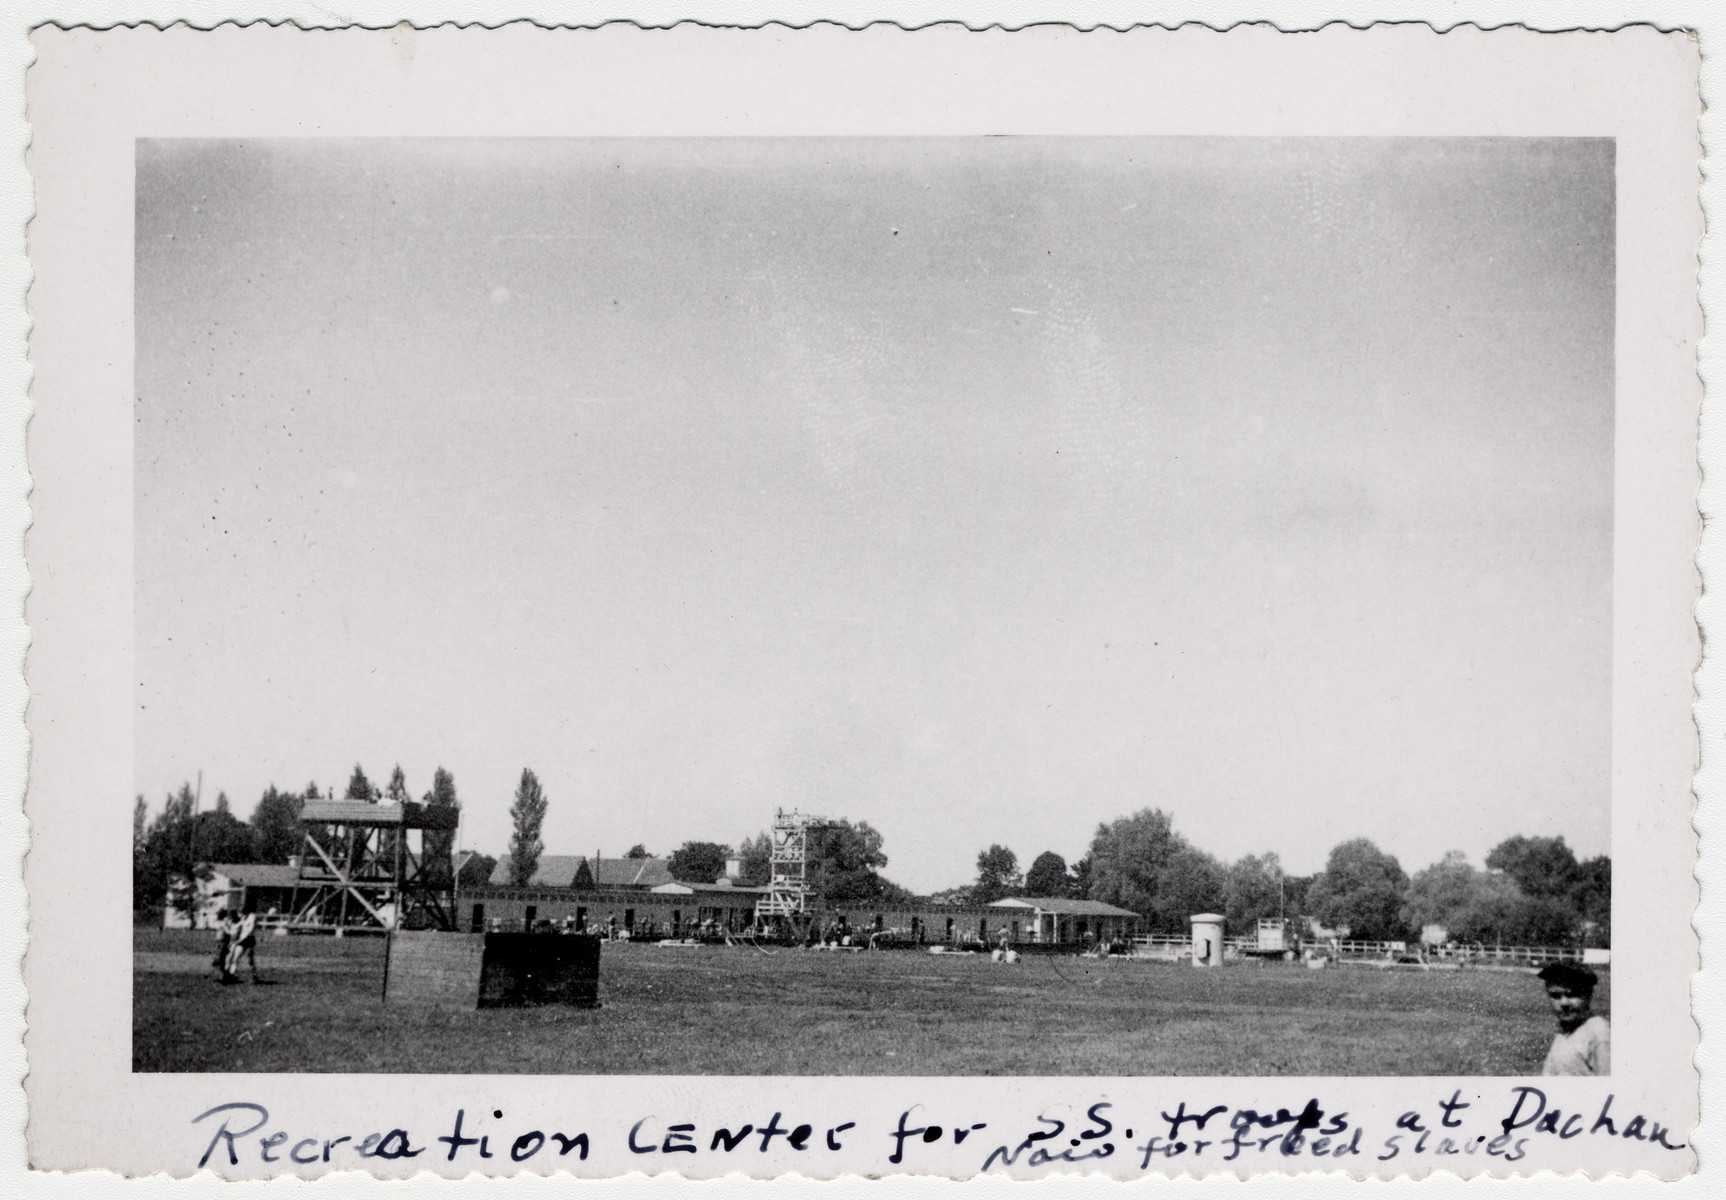 "View of the SS recreation fields in Dachau following liberation.  The original caption reads ""Recreation center for SS troops at Dachau now for freed slaves""."